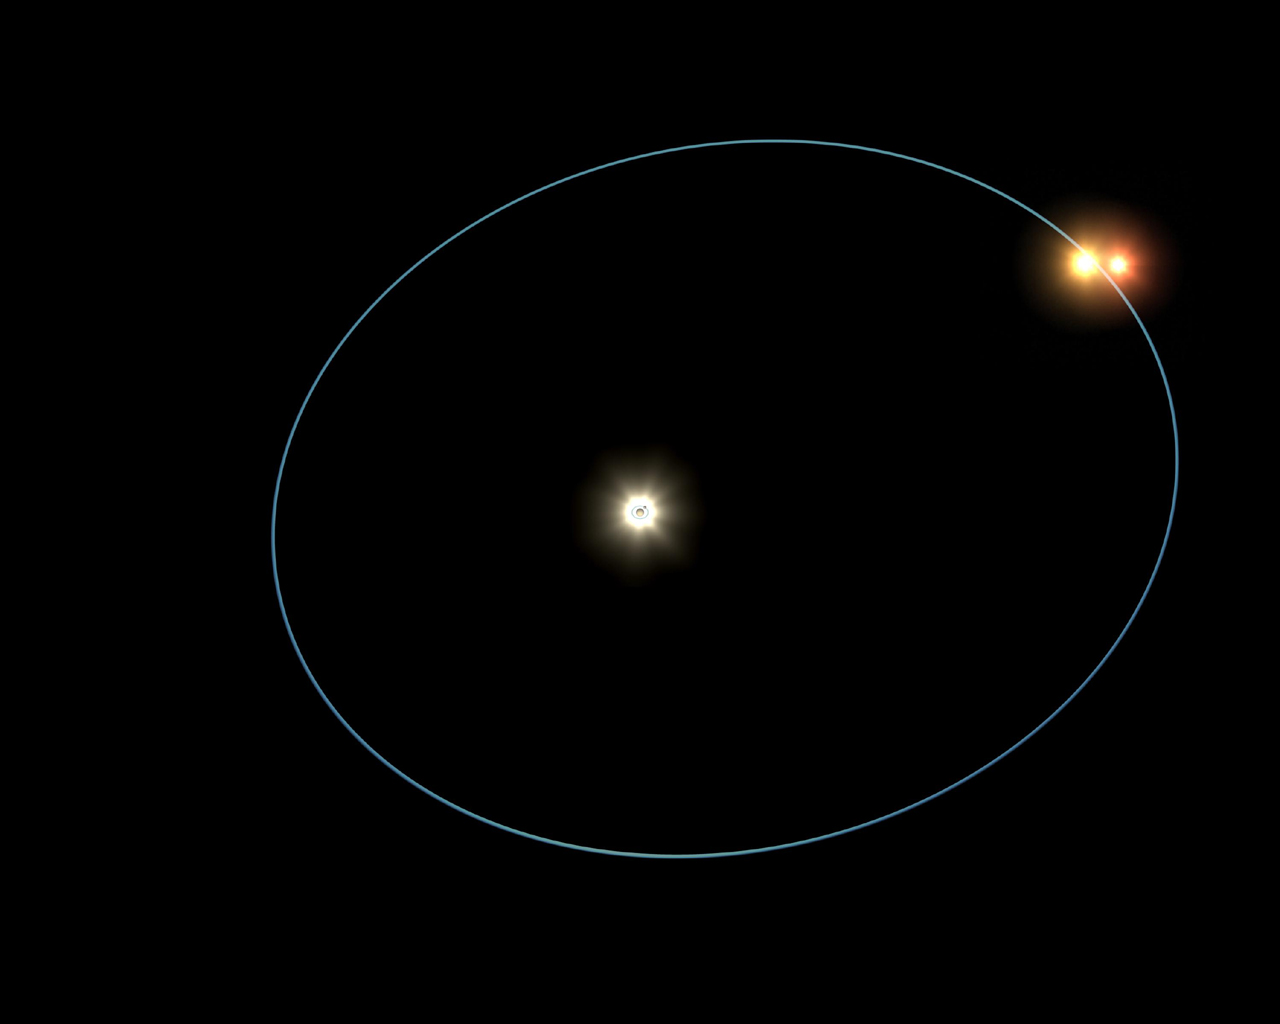 This frame from an artist's animation shows the clockwork-like orbits of a triple-star system called HD 188753, which was discovered to harbor a gas giant, or 'hot Jupiter,' planet.